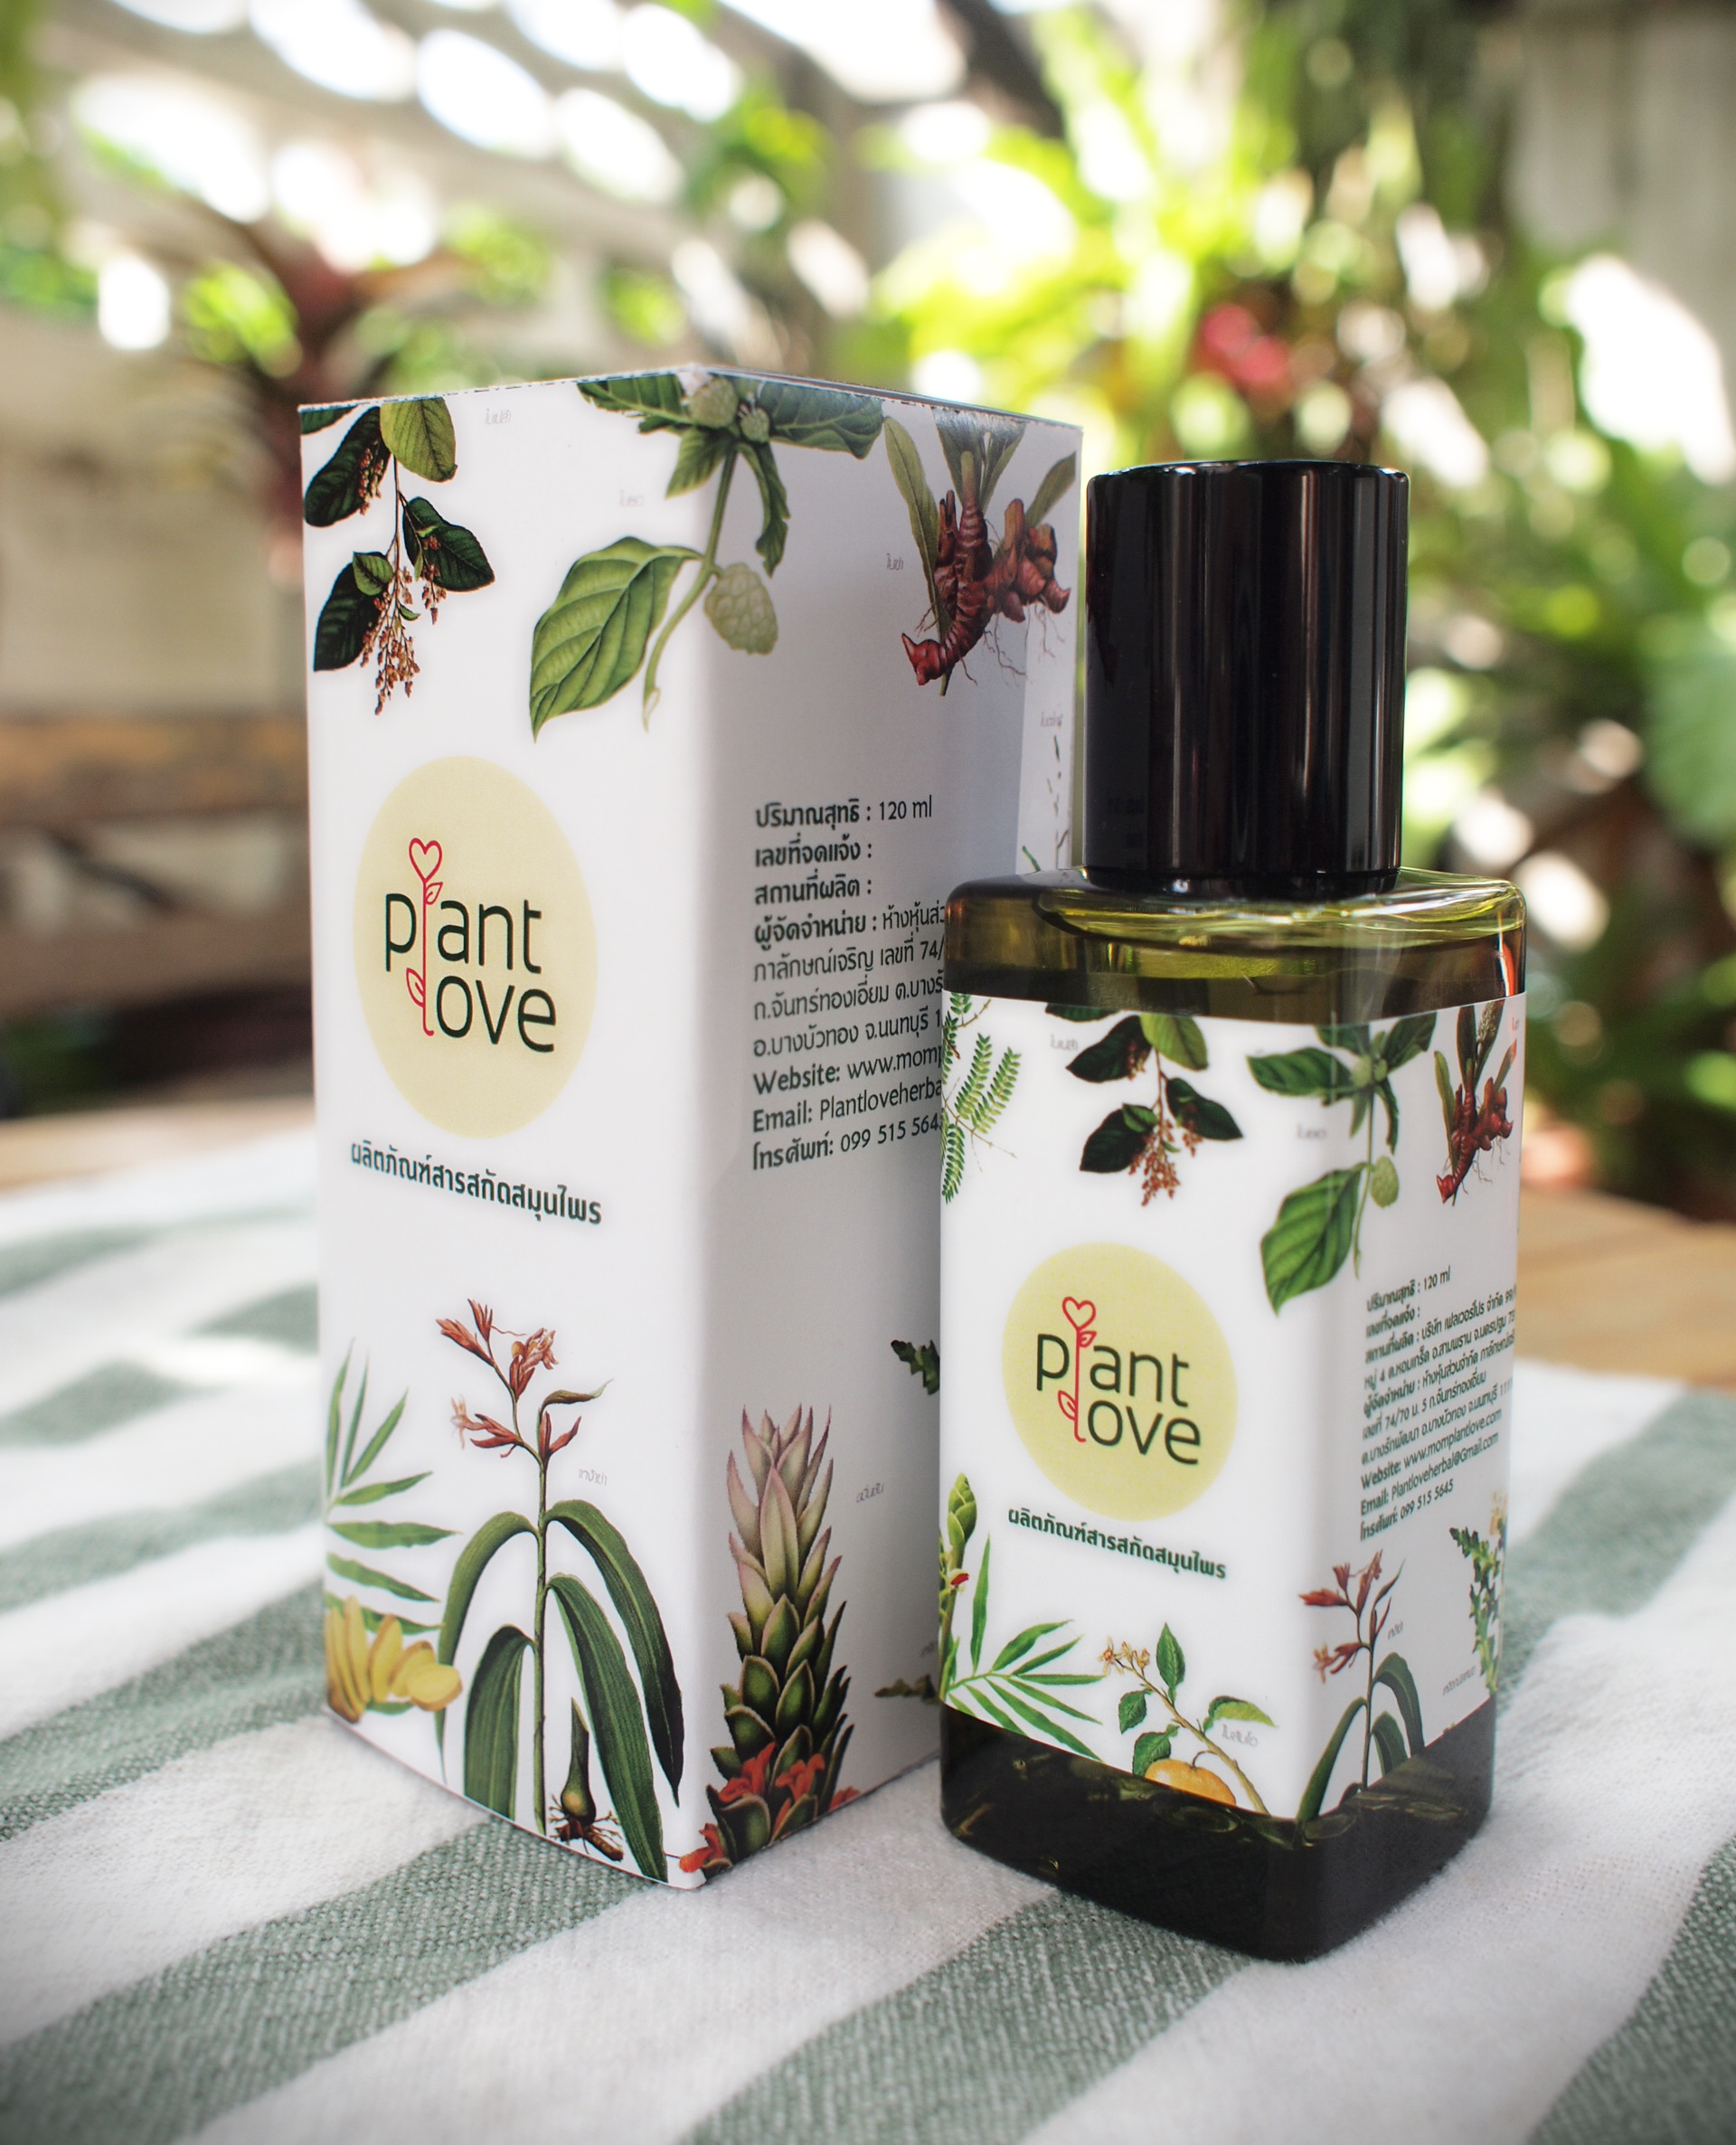 Concentrated Herbal Blend Extract for Bathing สารสกัดสมุนไพรเข้มข้น